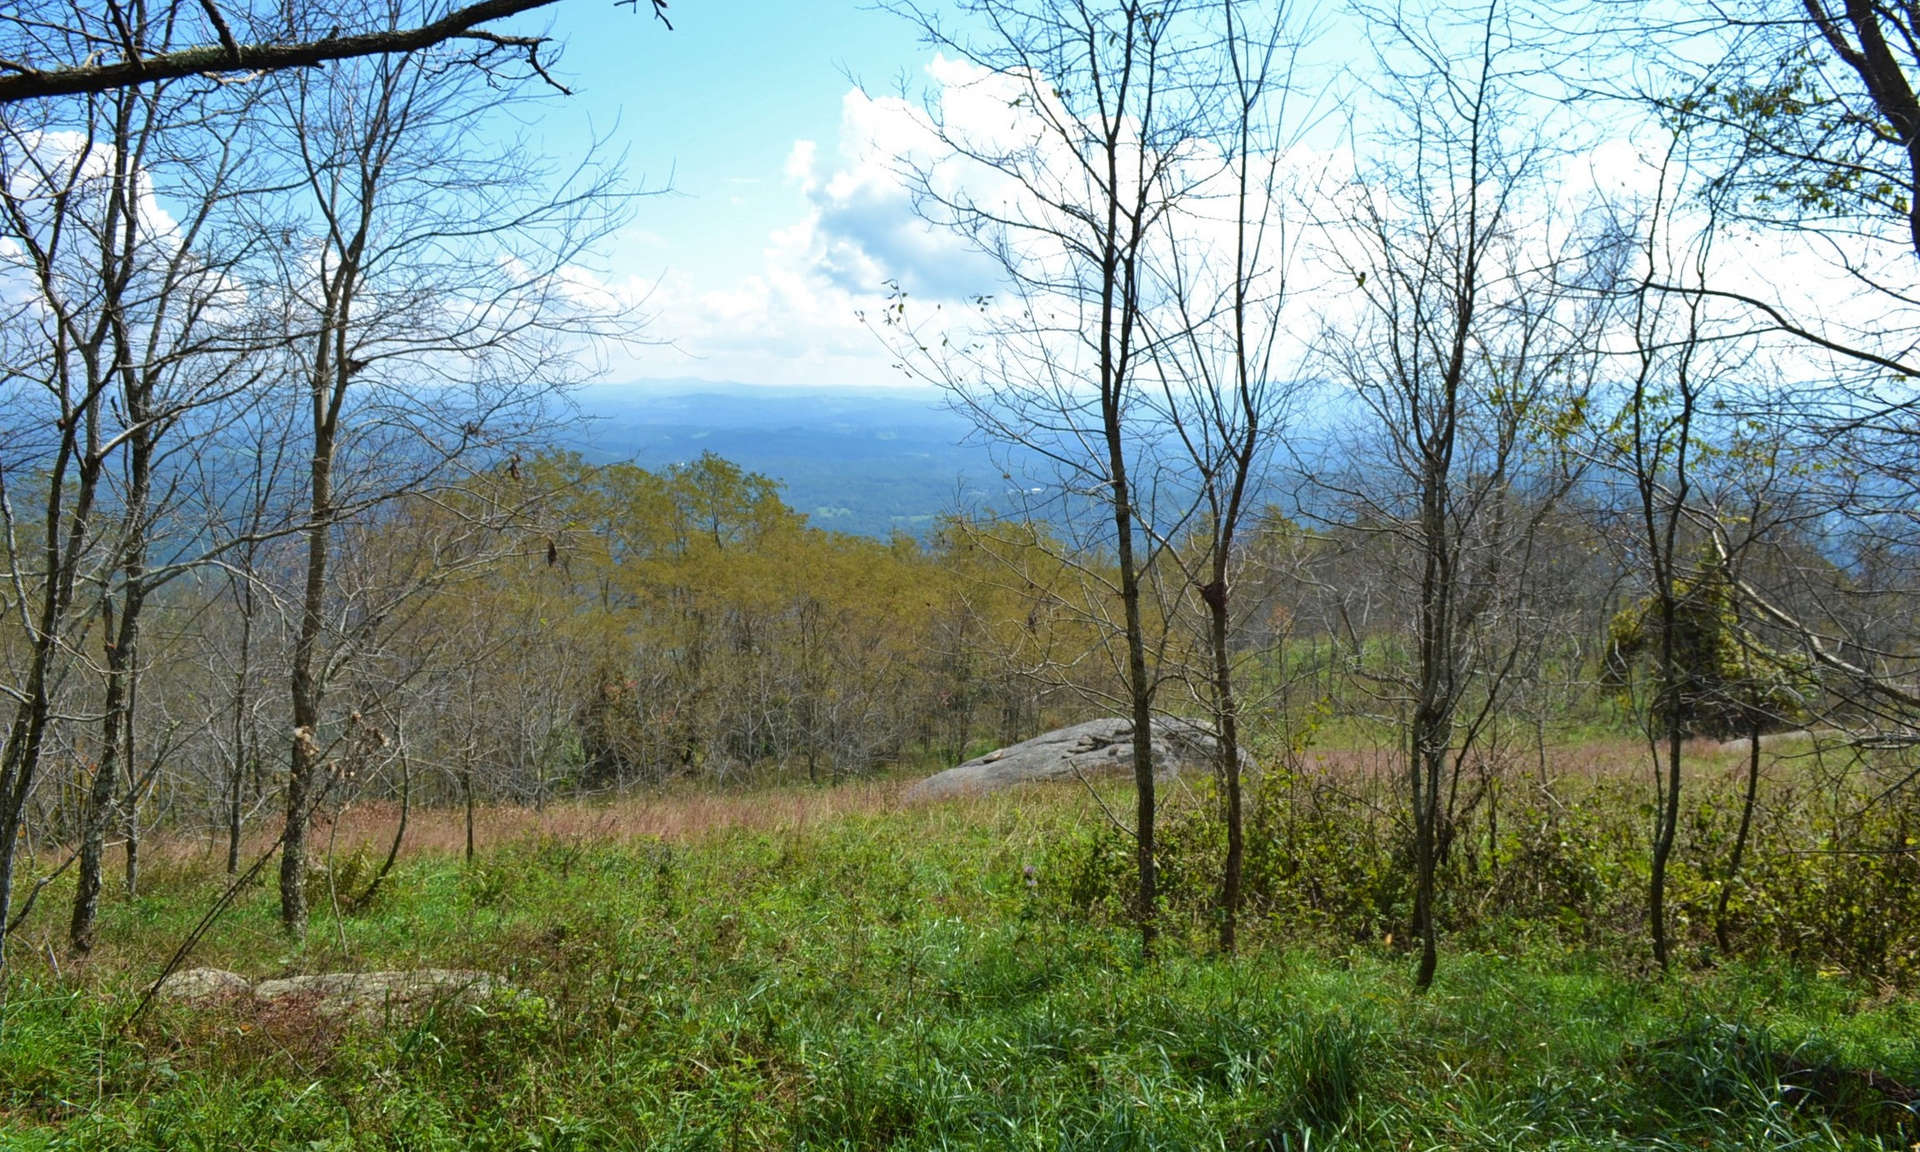 PREMIER PRIVATE MOUNTAIN TRACT IN POINT LOOKOUT MOUNTAIN!  Enjoy panoramic views from most locations on this 5.42 acre tract located in one of Grayson County's exclusive gated communities, Point Lookout Mountain.